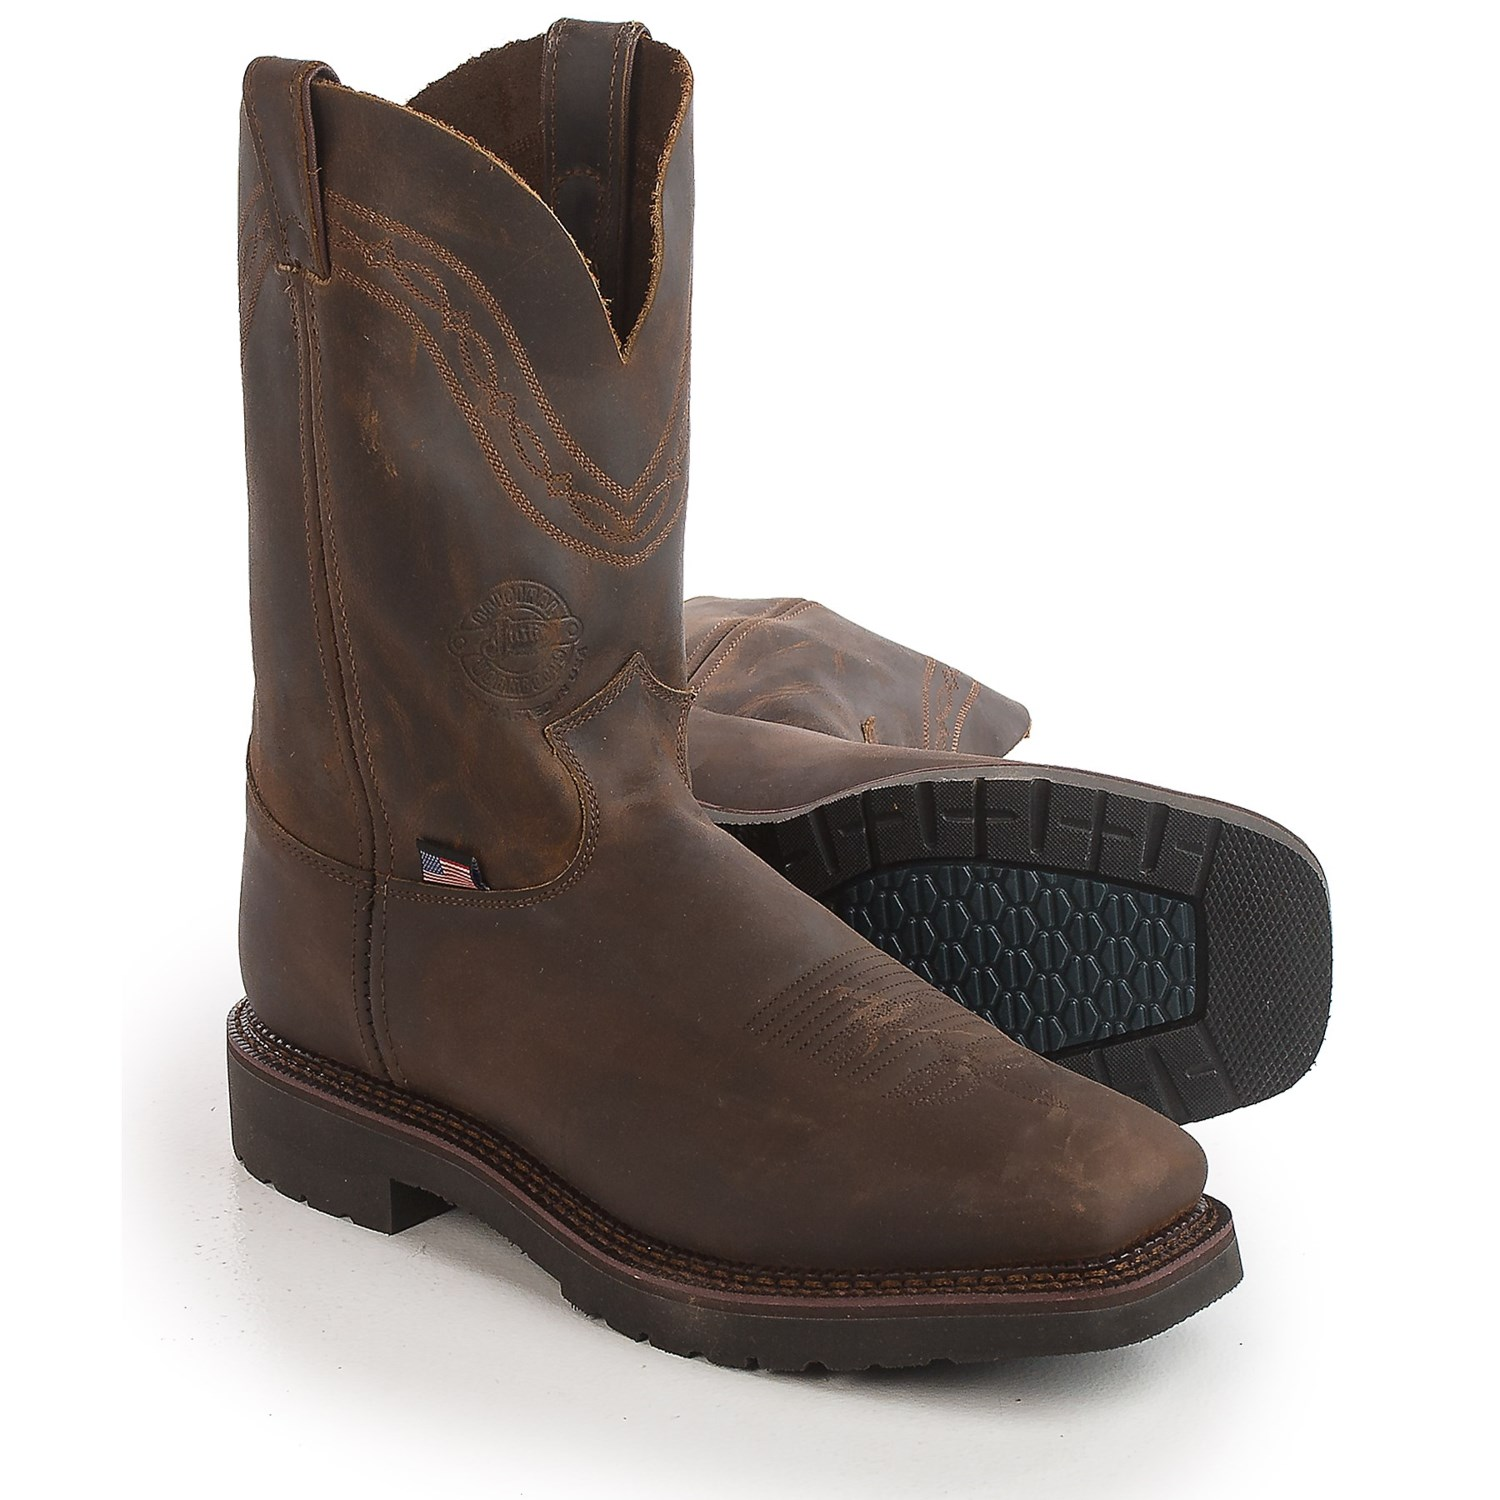 Justin Boots Sunderland Crazyhorse Cowboy Work Boots (For Men ...